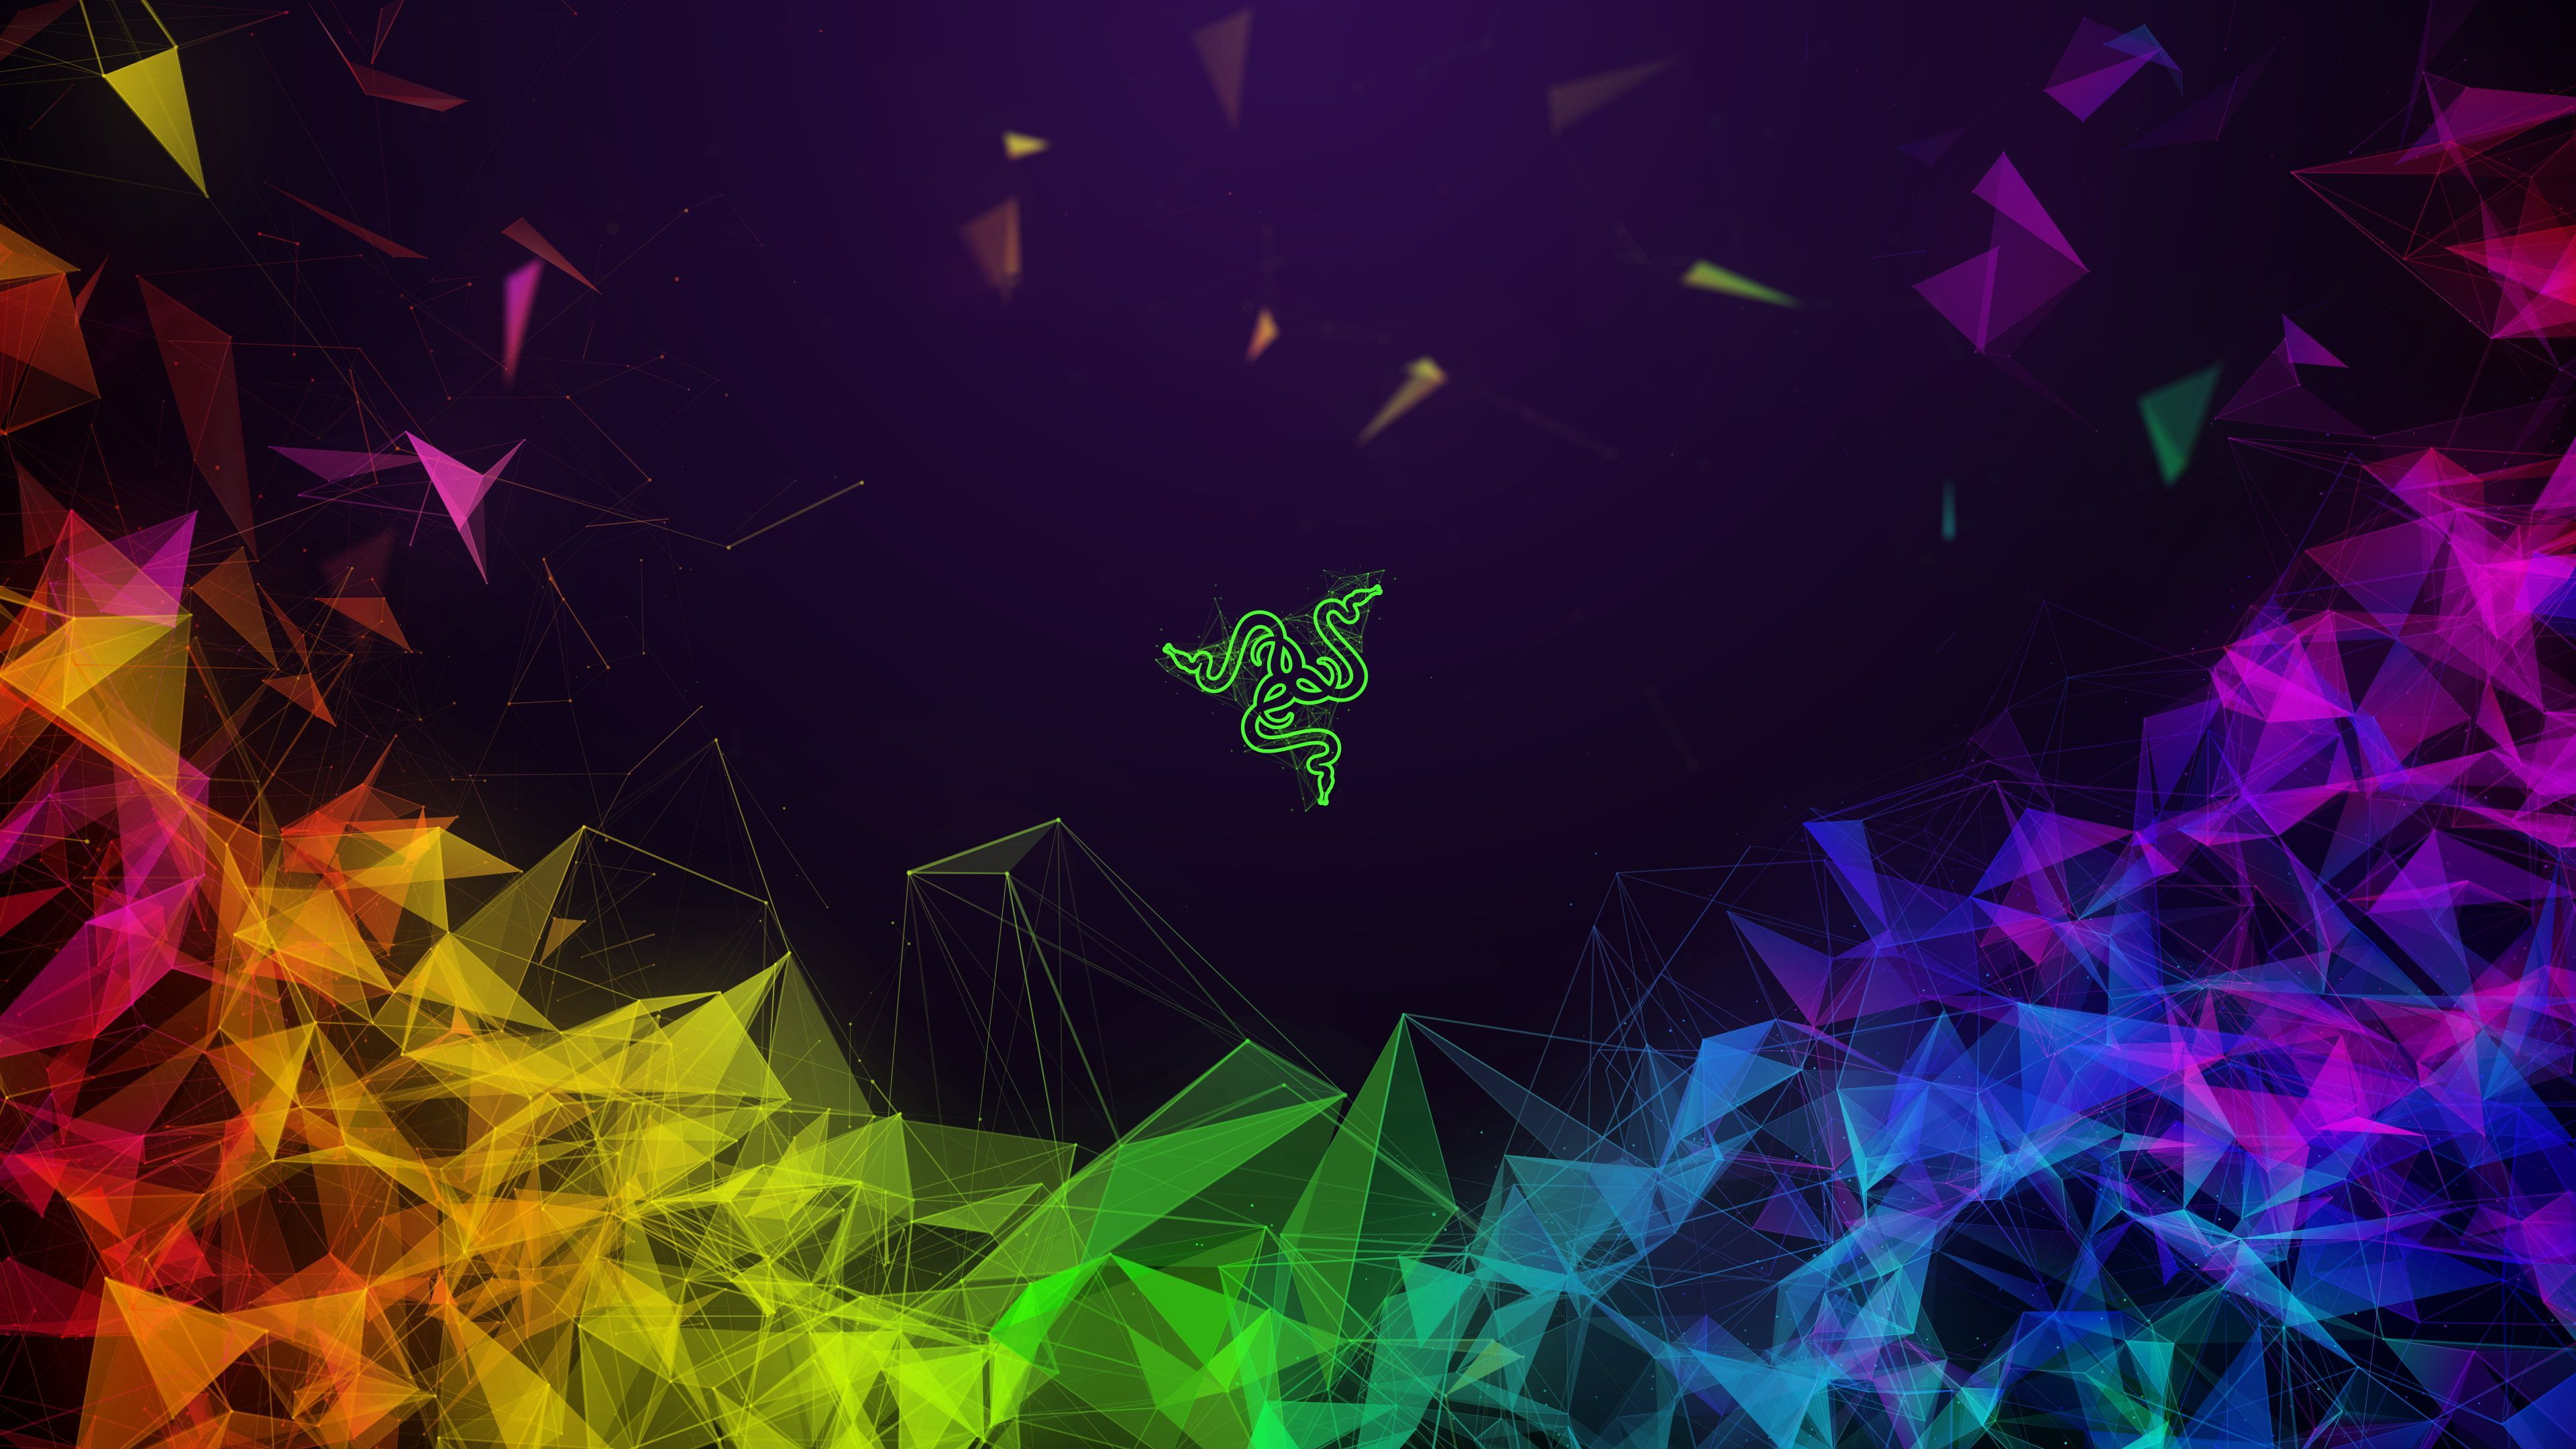 Wallpaper Cool Gaming Backgrounds